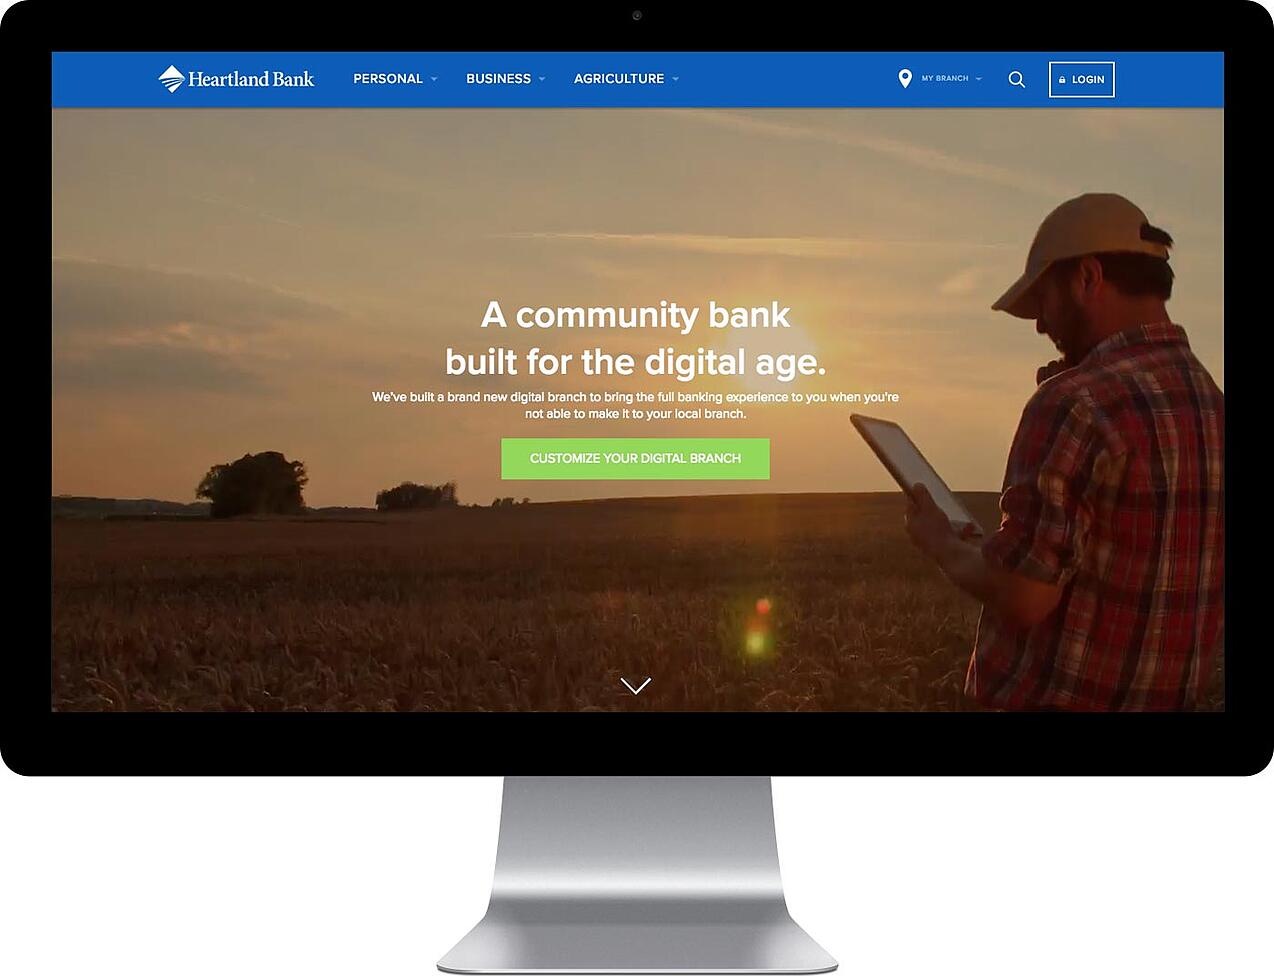 Heartland Bank website on a desktop computer